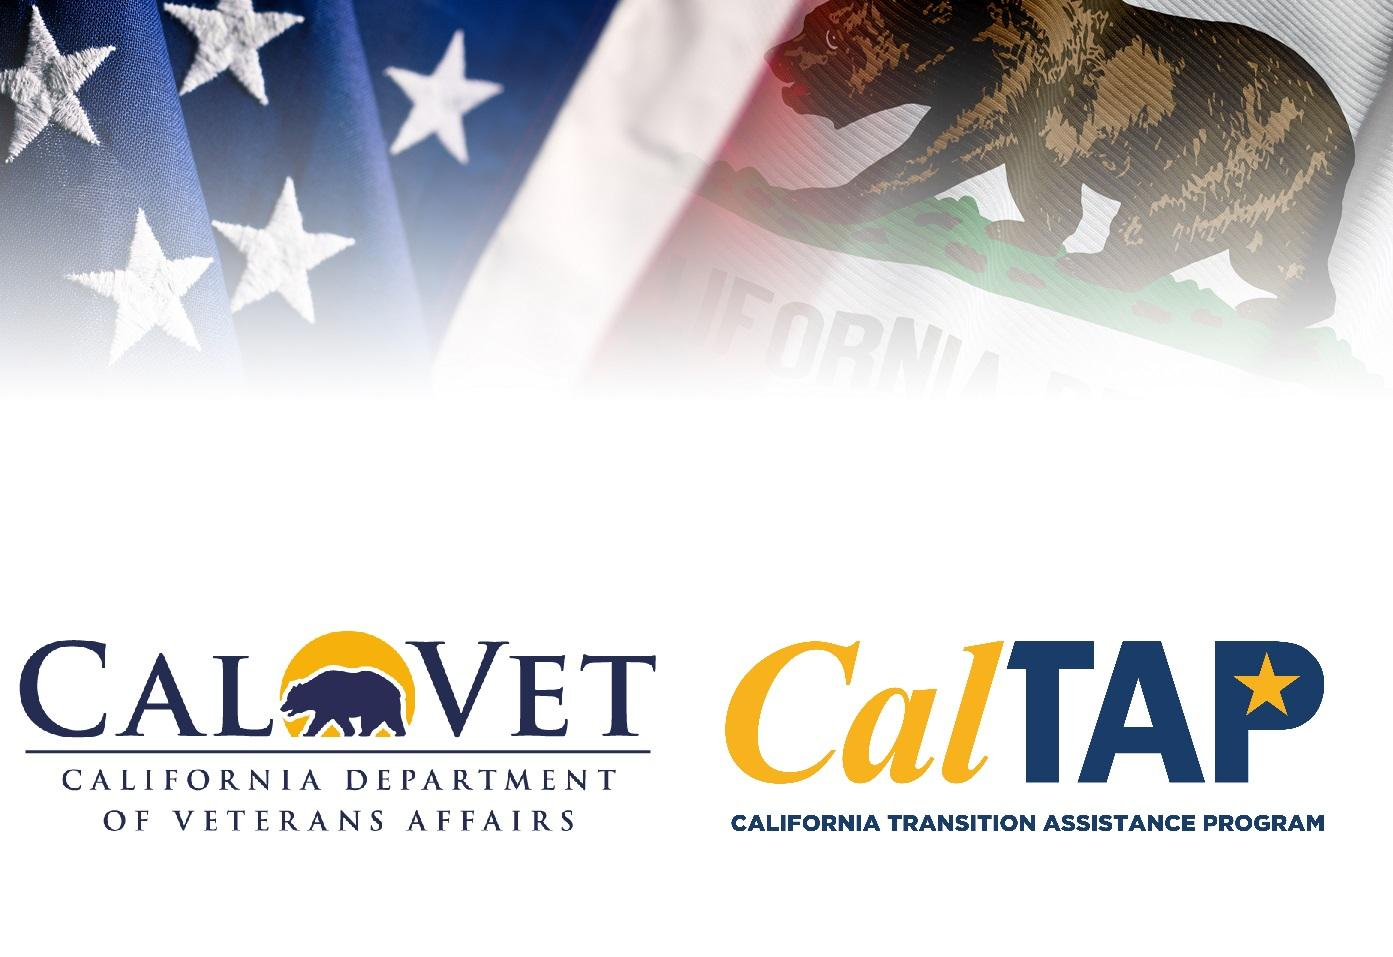 California Transition Assistance Program - Los Angeles AFB